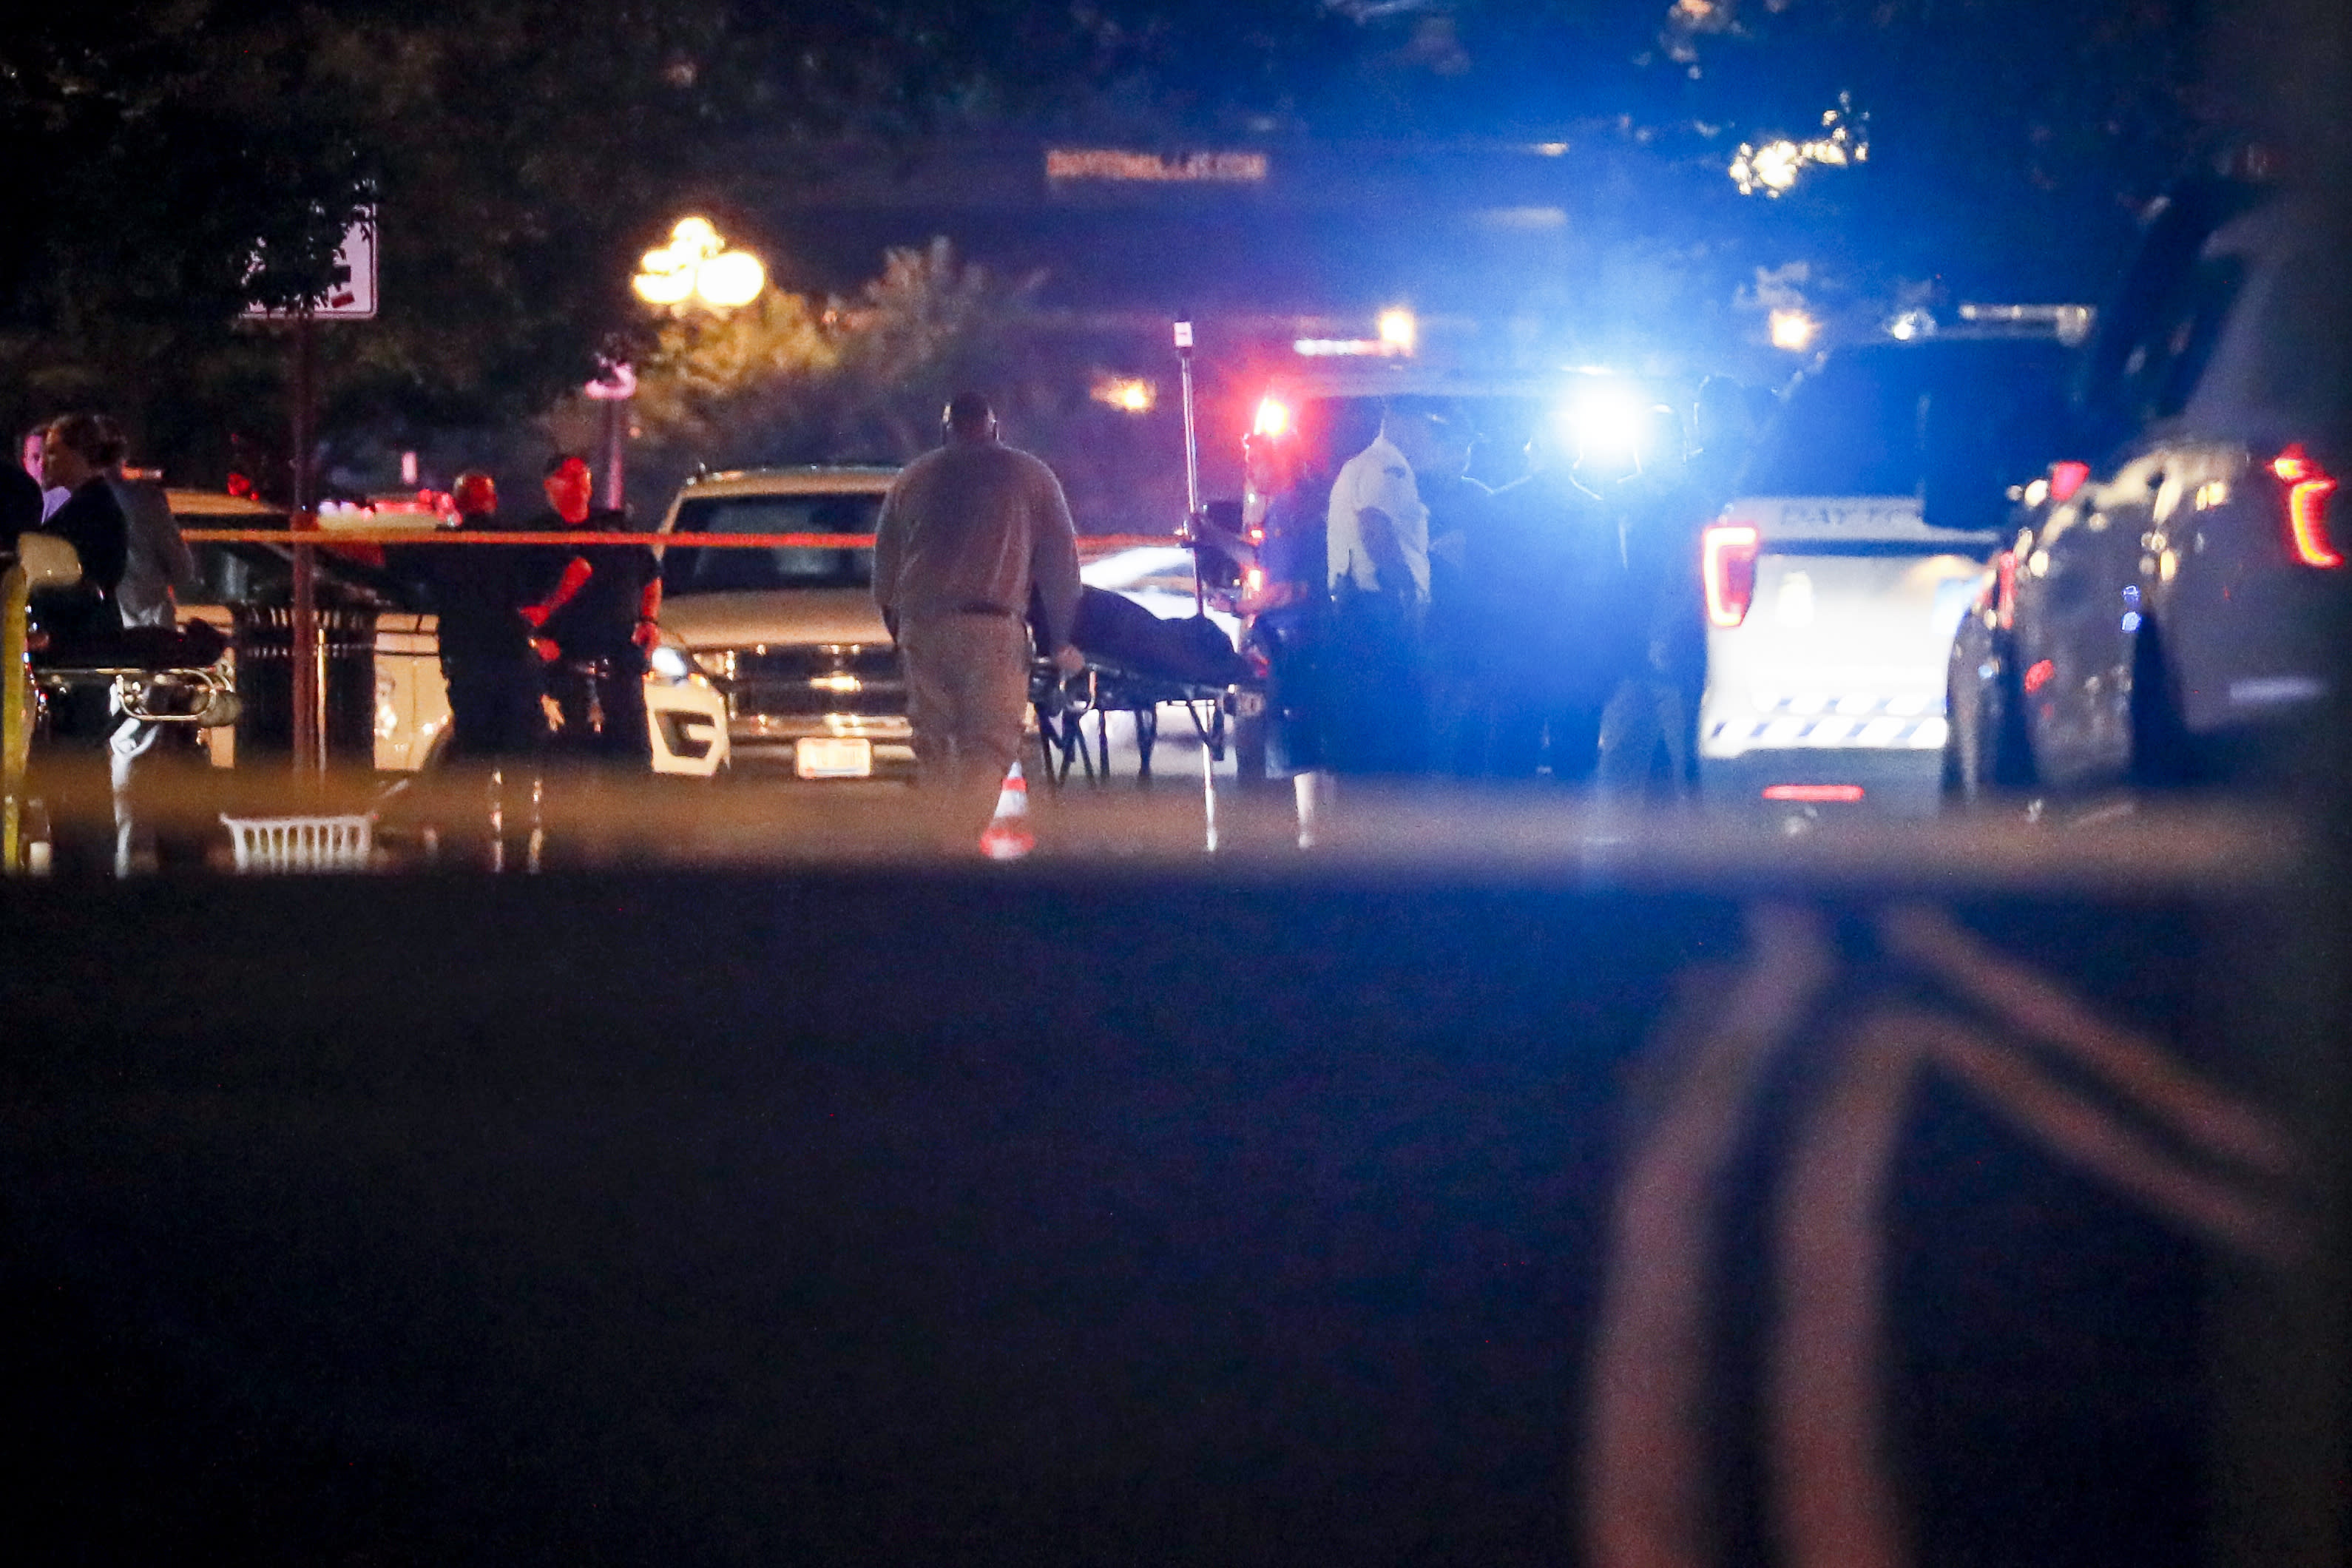 Nine dead in Dayton, Ohio, in second mass shooting in 24 hours